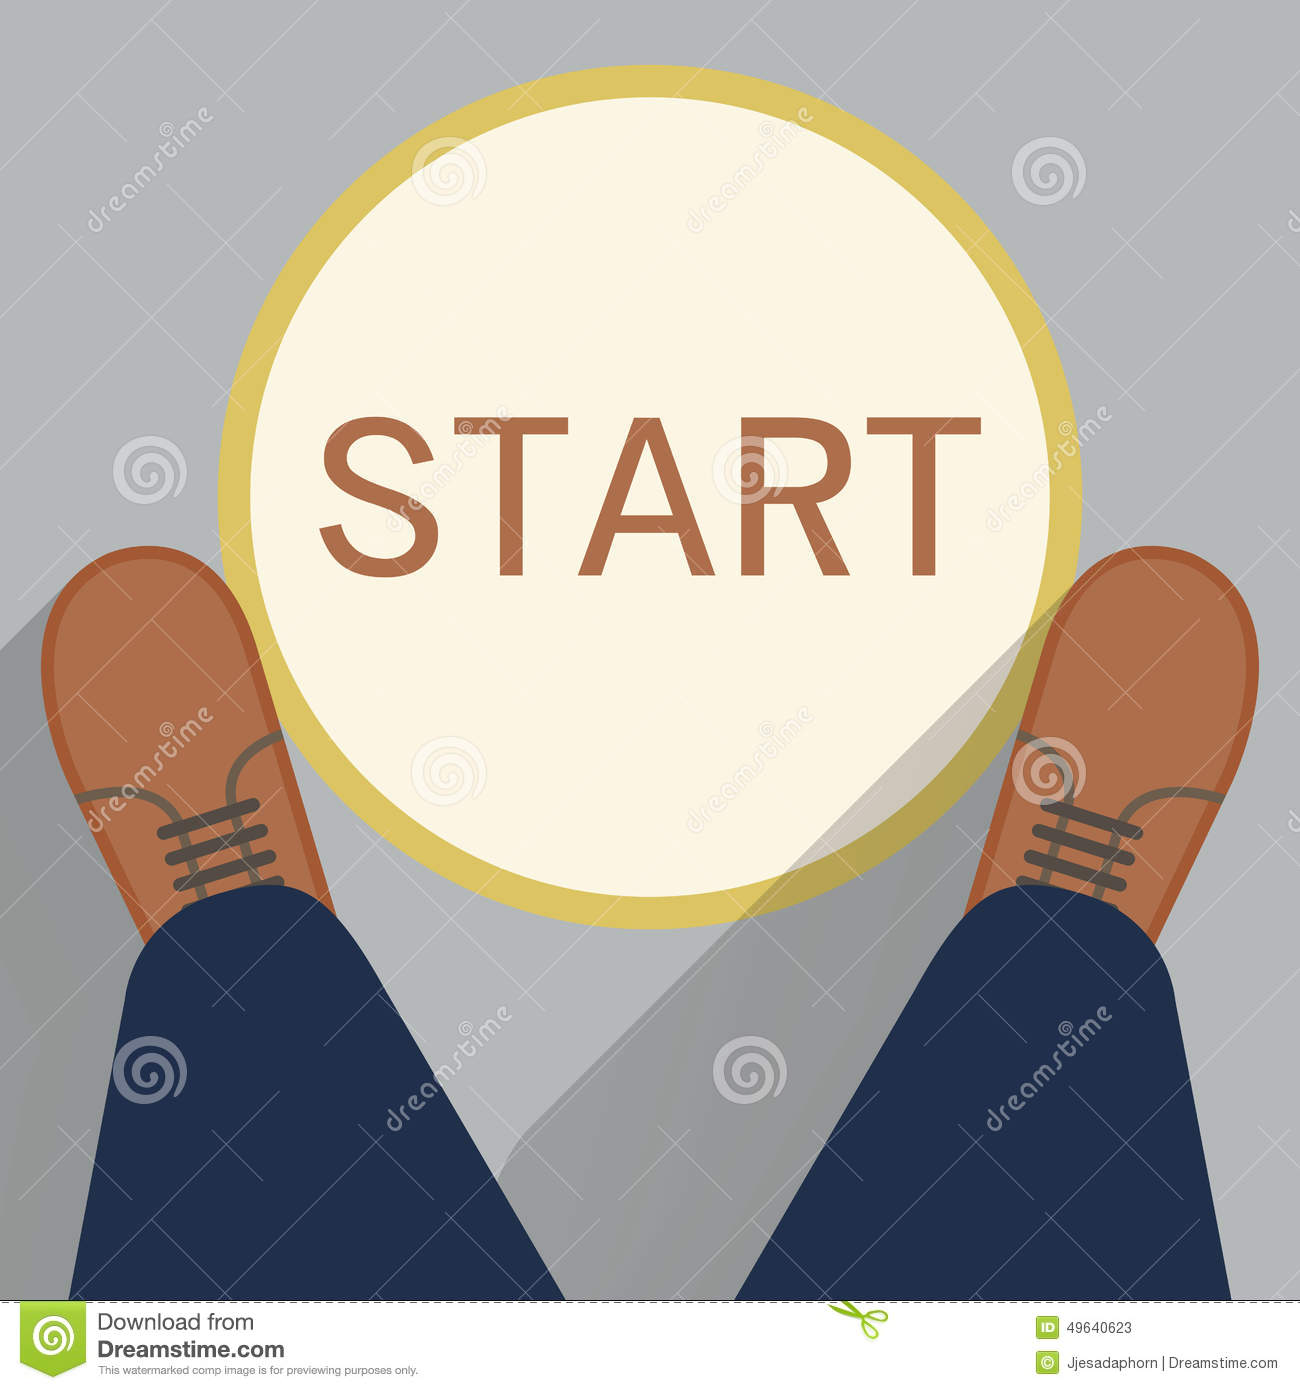 Dign Start Point Stock Photo Image 49640623